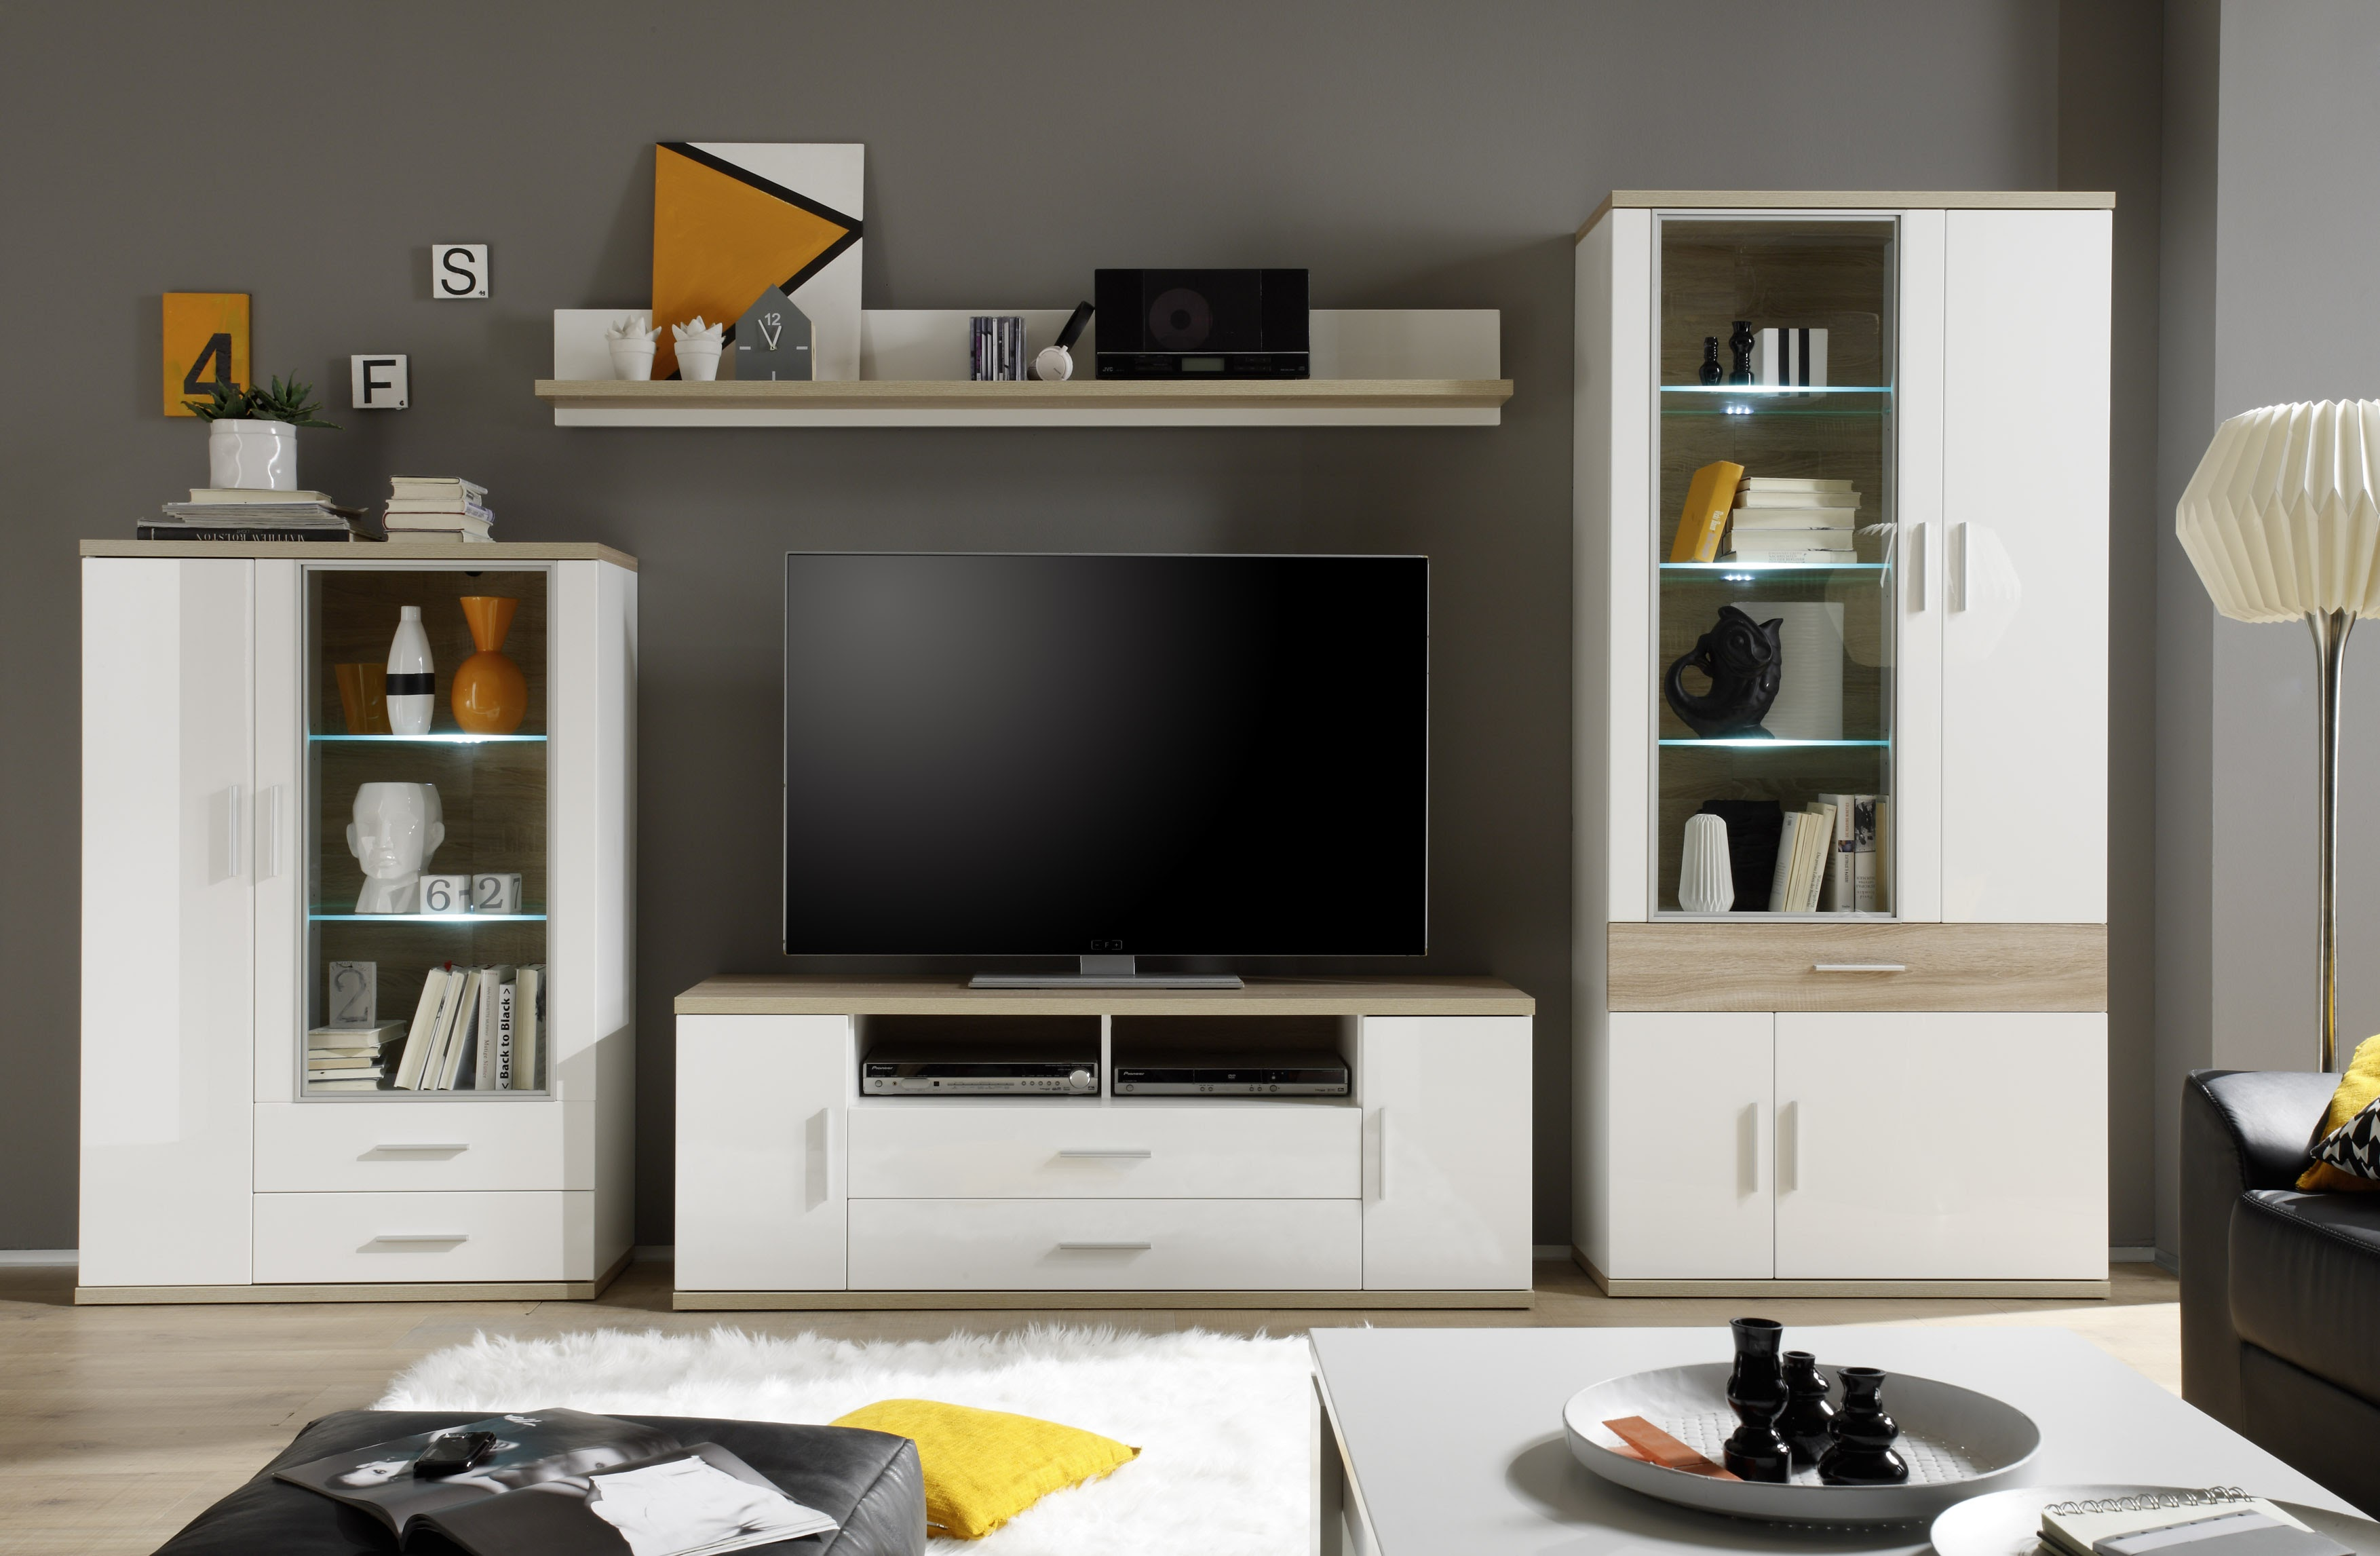 anbauwand weiss eiche sanoma hell inkl beleuchtung. Black Bedroom Furniture Sets. Home Design Ideas